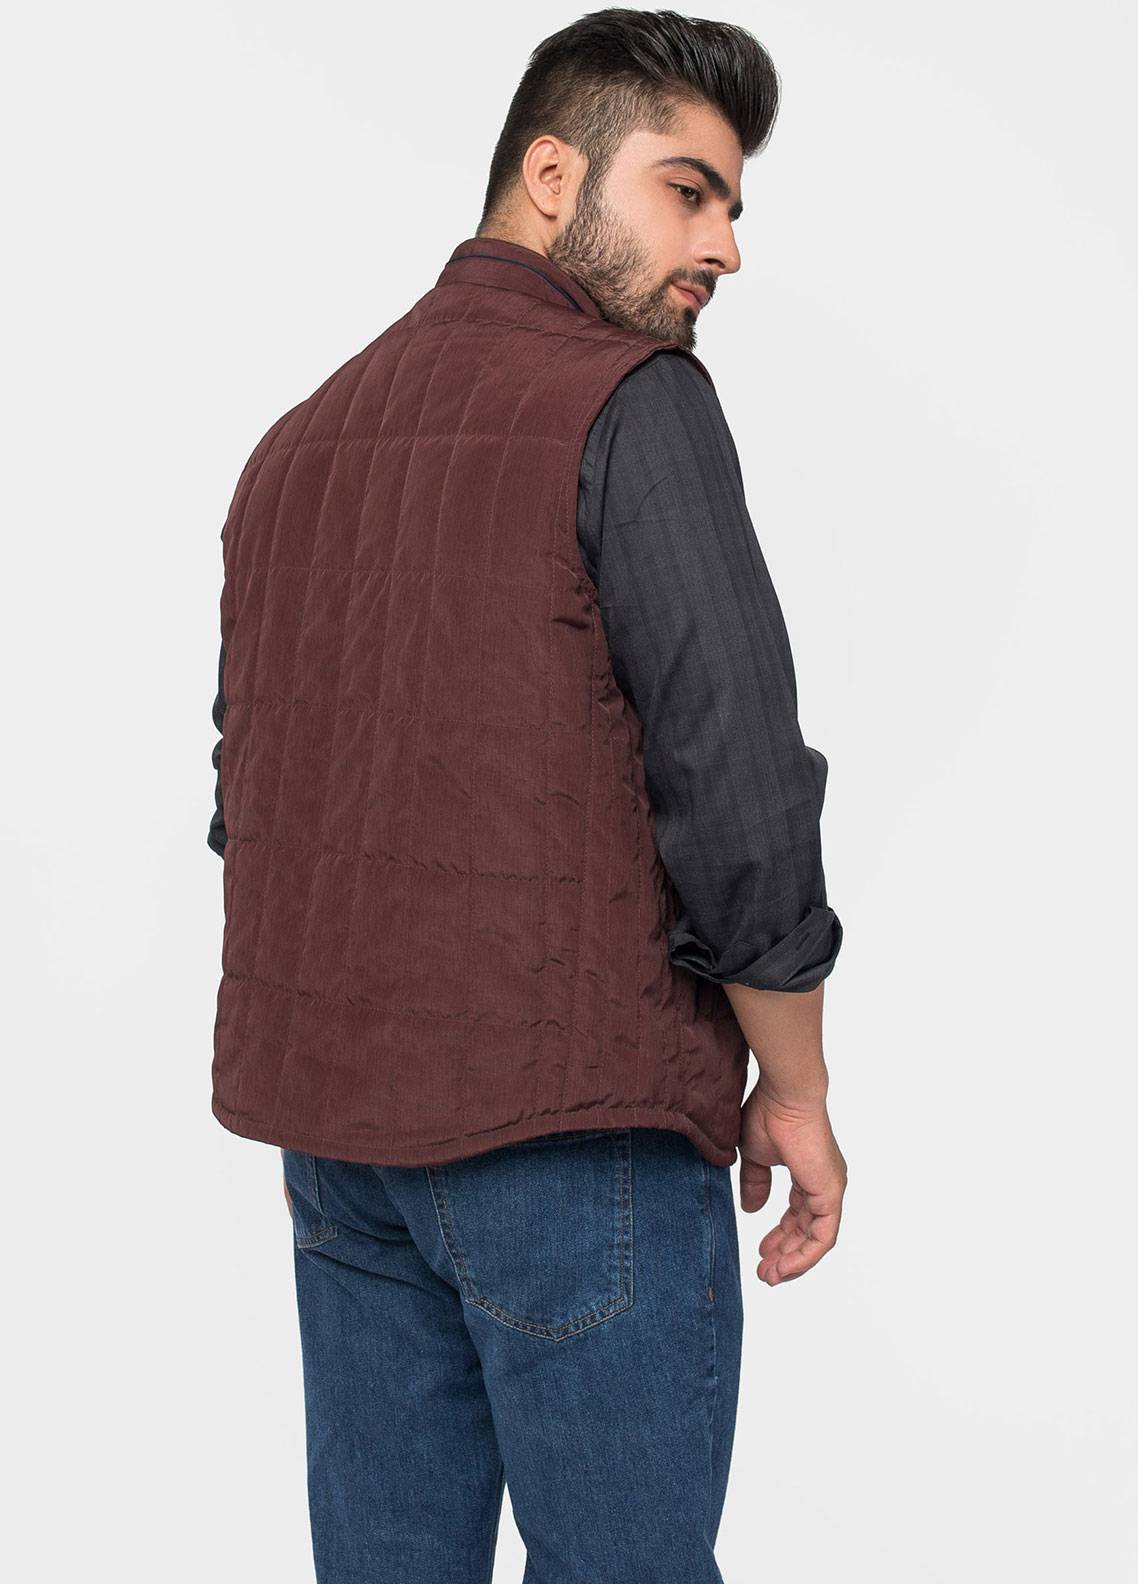 Brumano Polyester Sleeveless Jackets for Men - Maroon BRM-12-1002